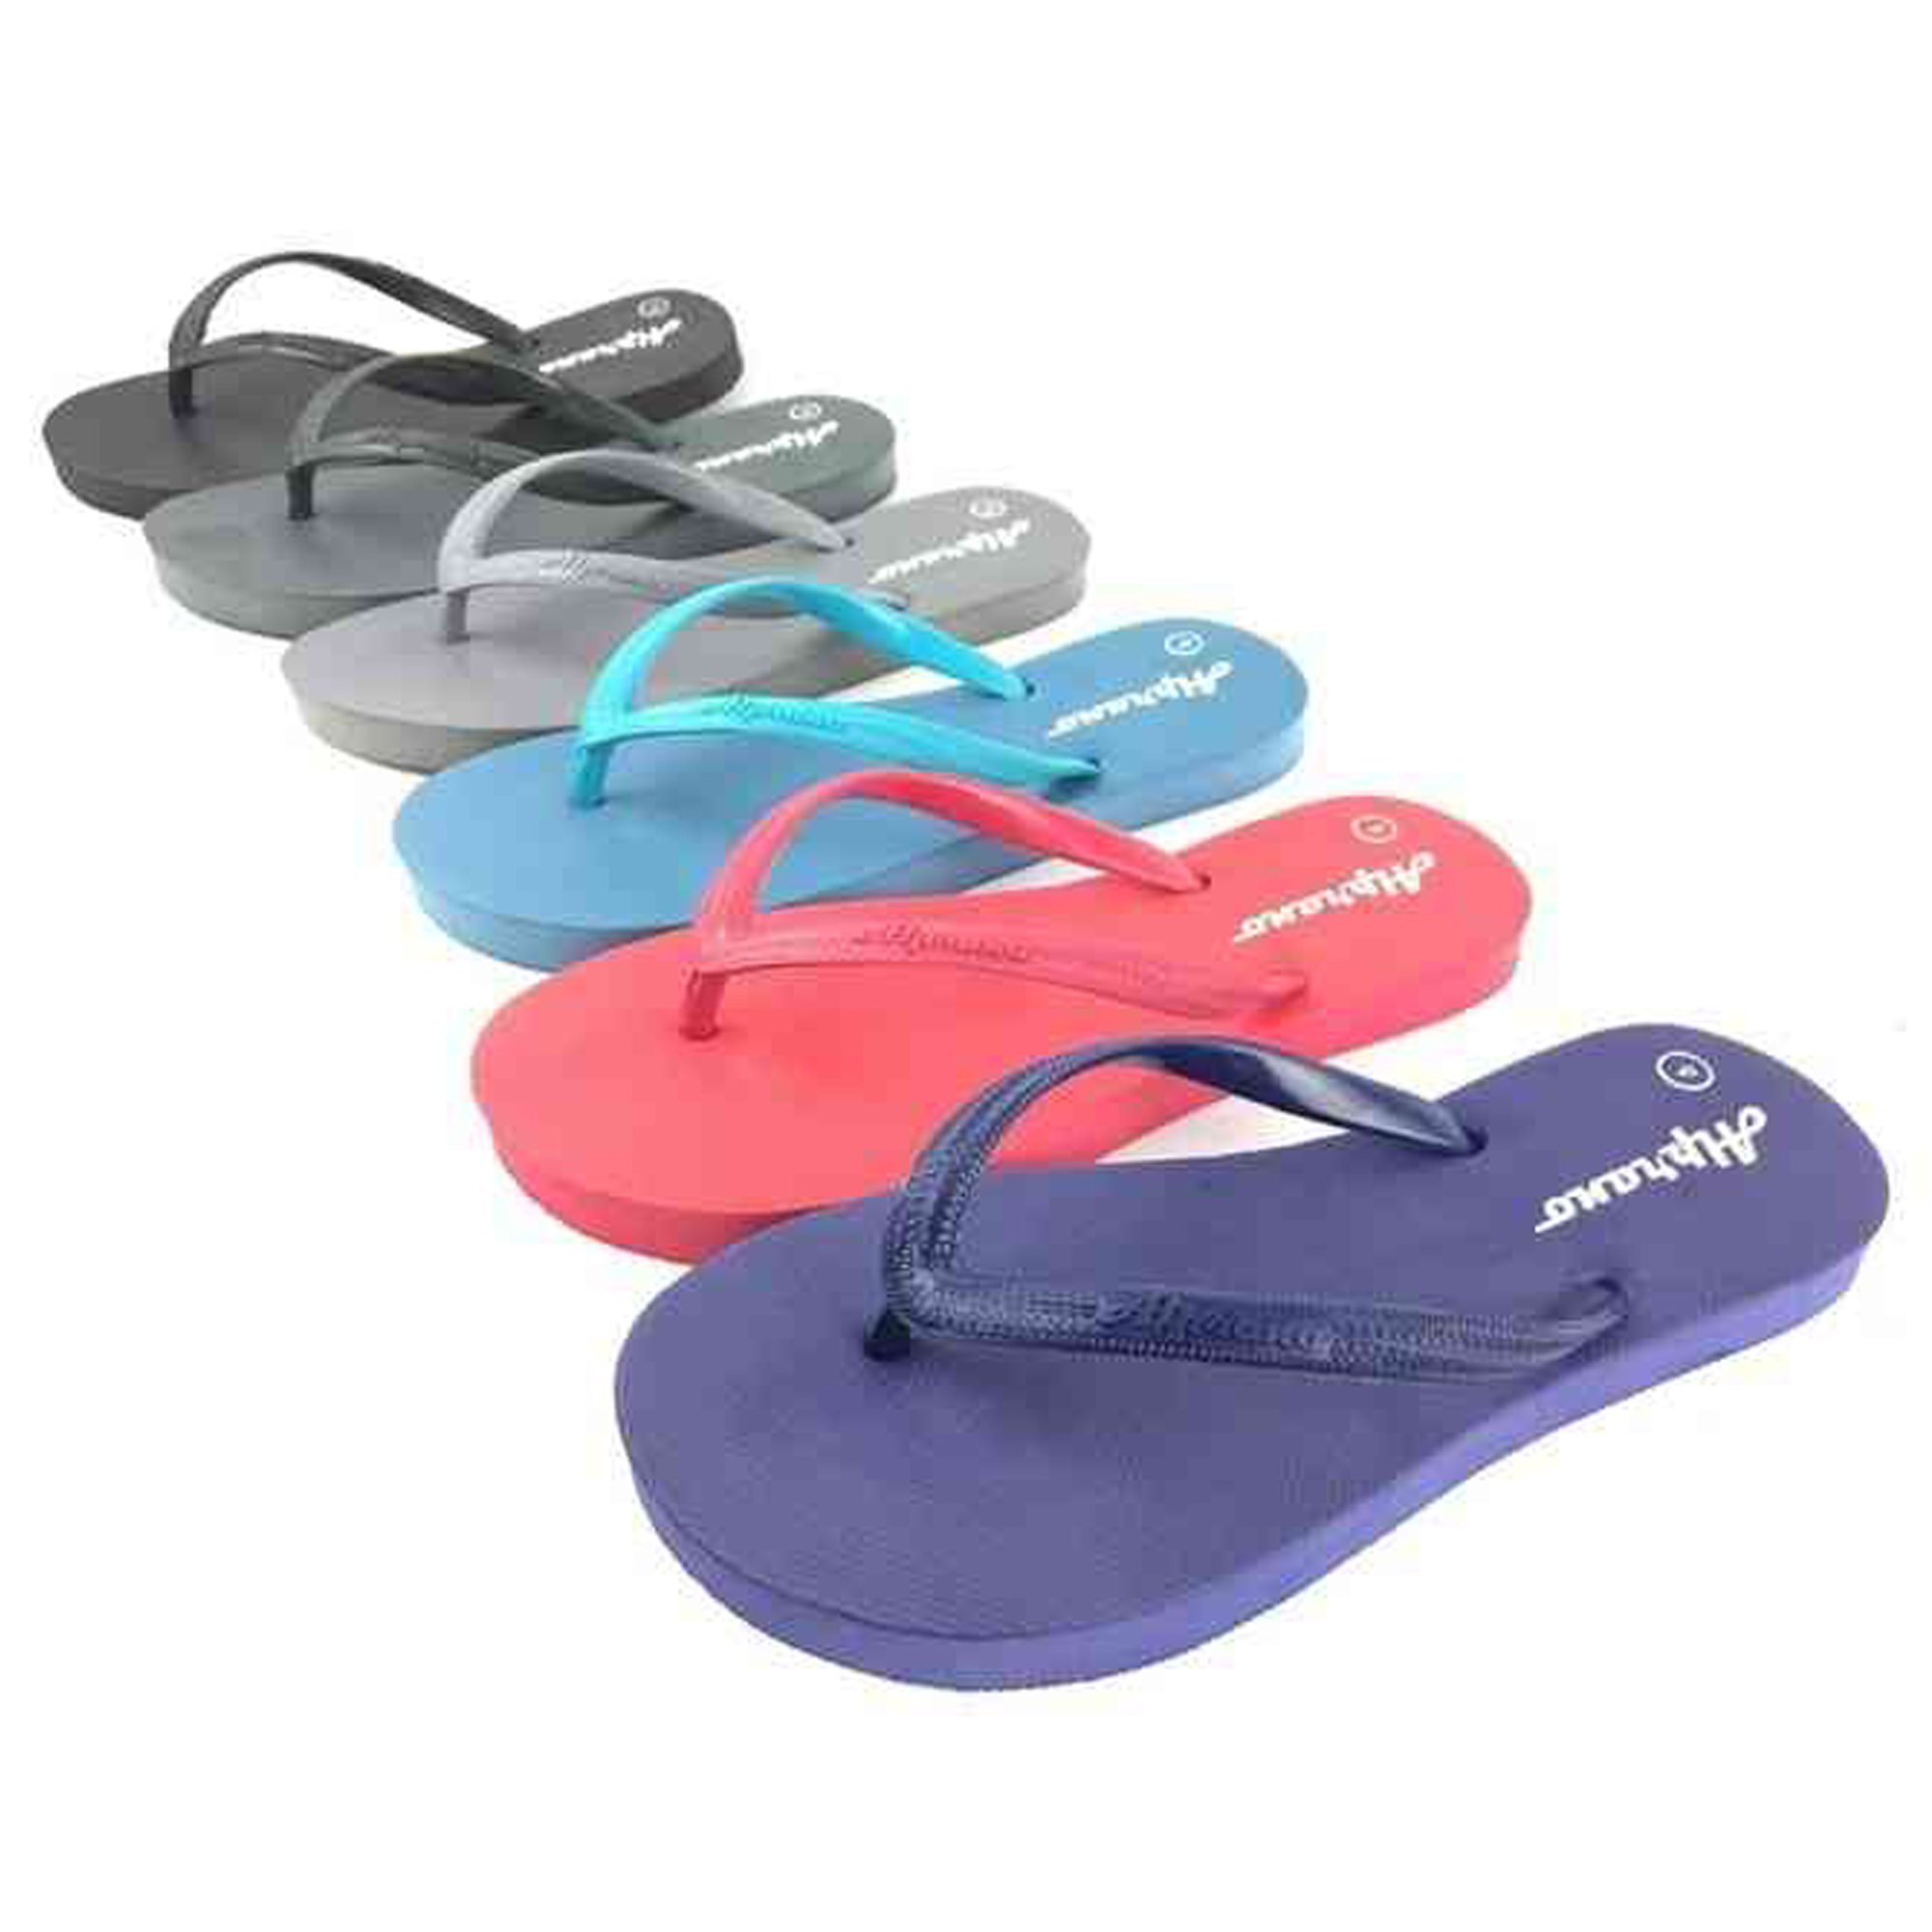 JN-APM 01 (UK9) Alprano Man Slipper